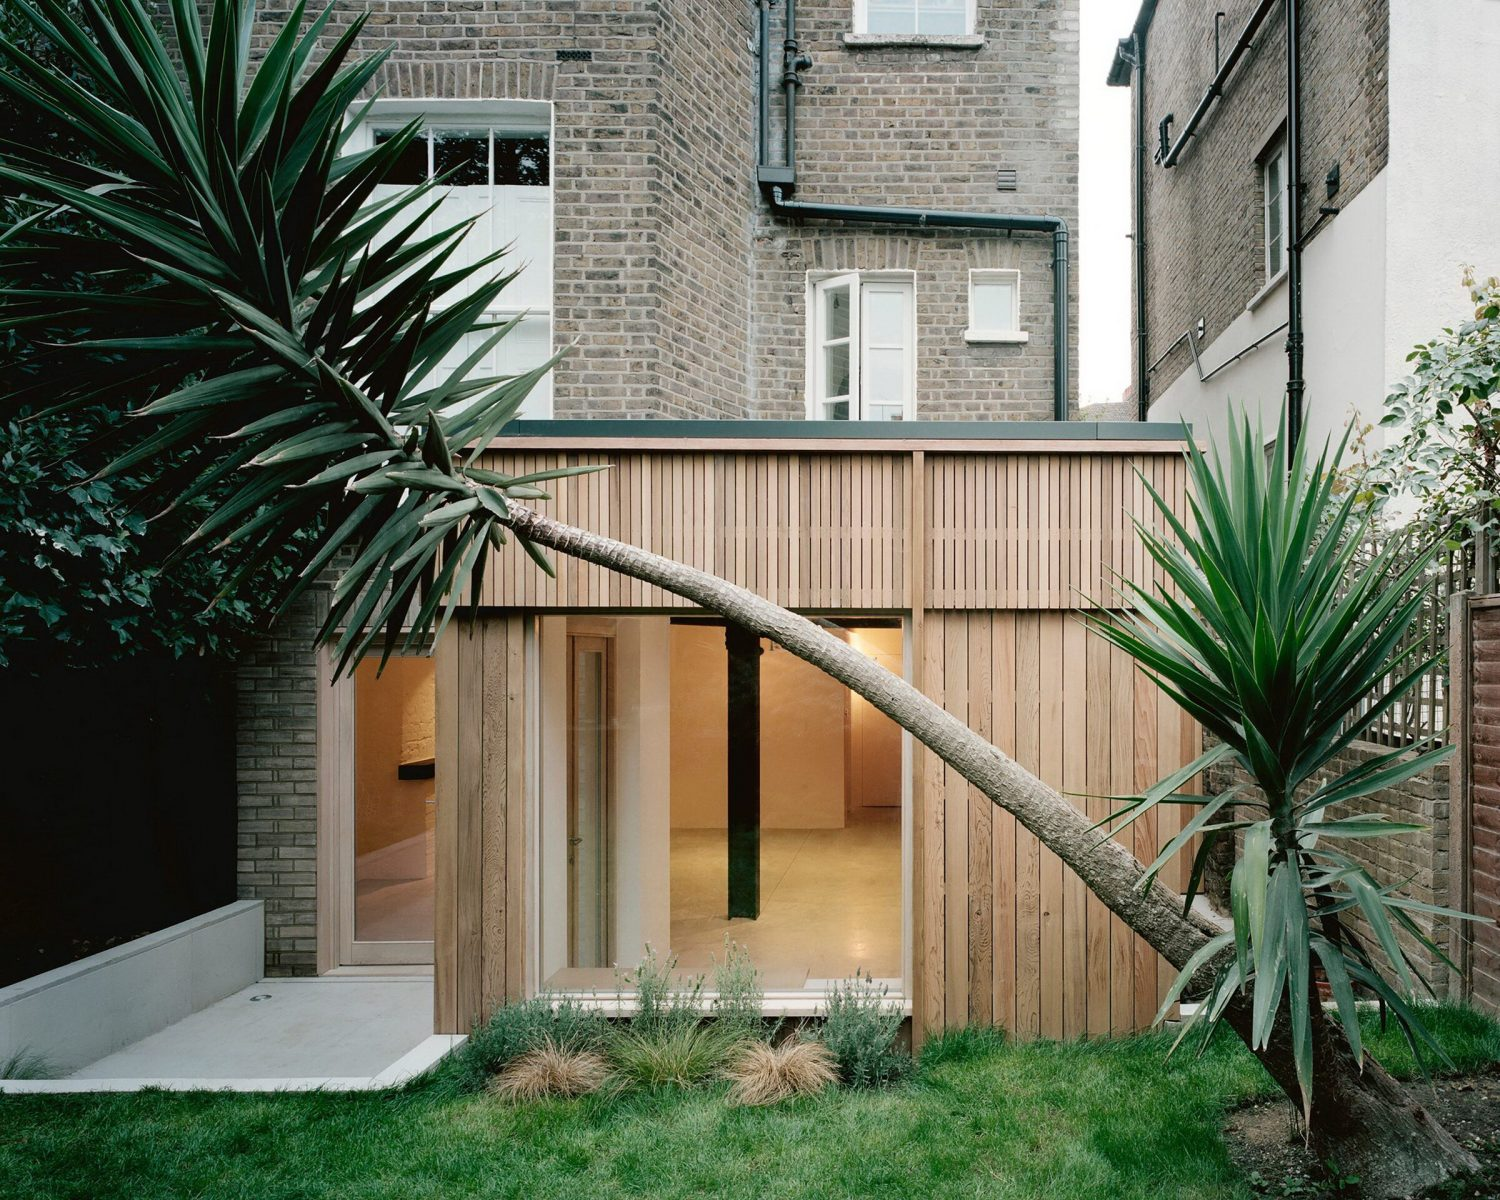 Leaning Yucca House by DF_DC